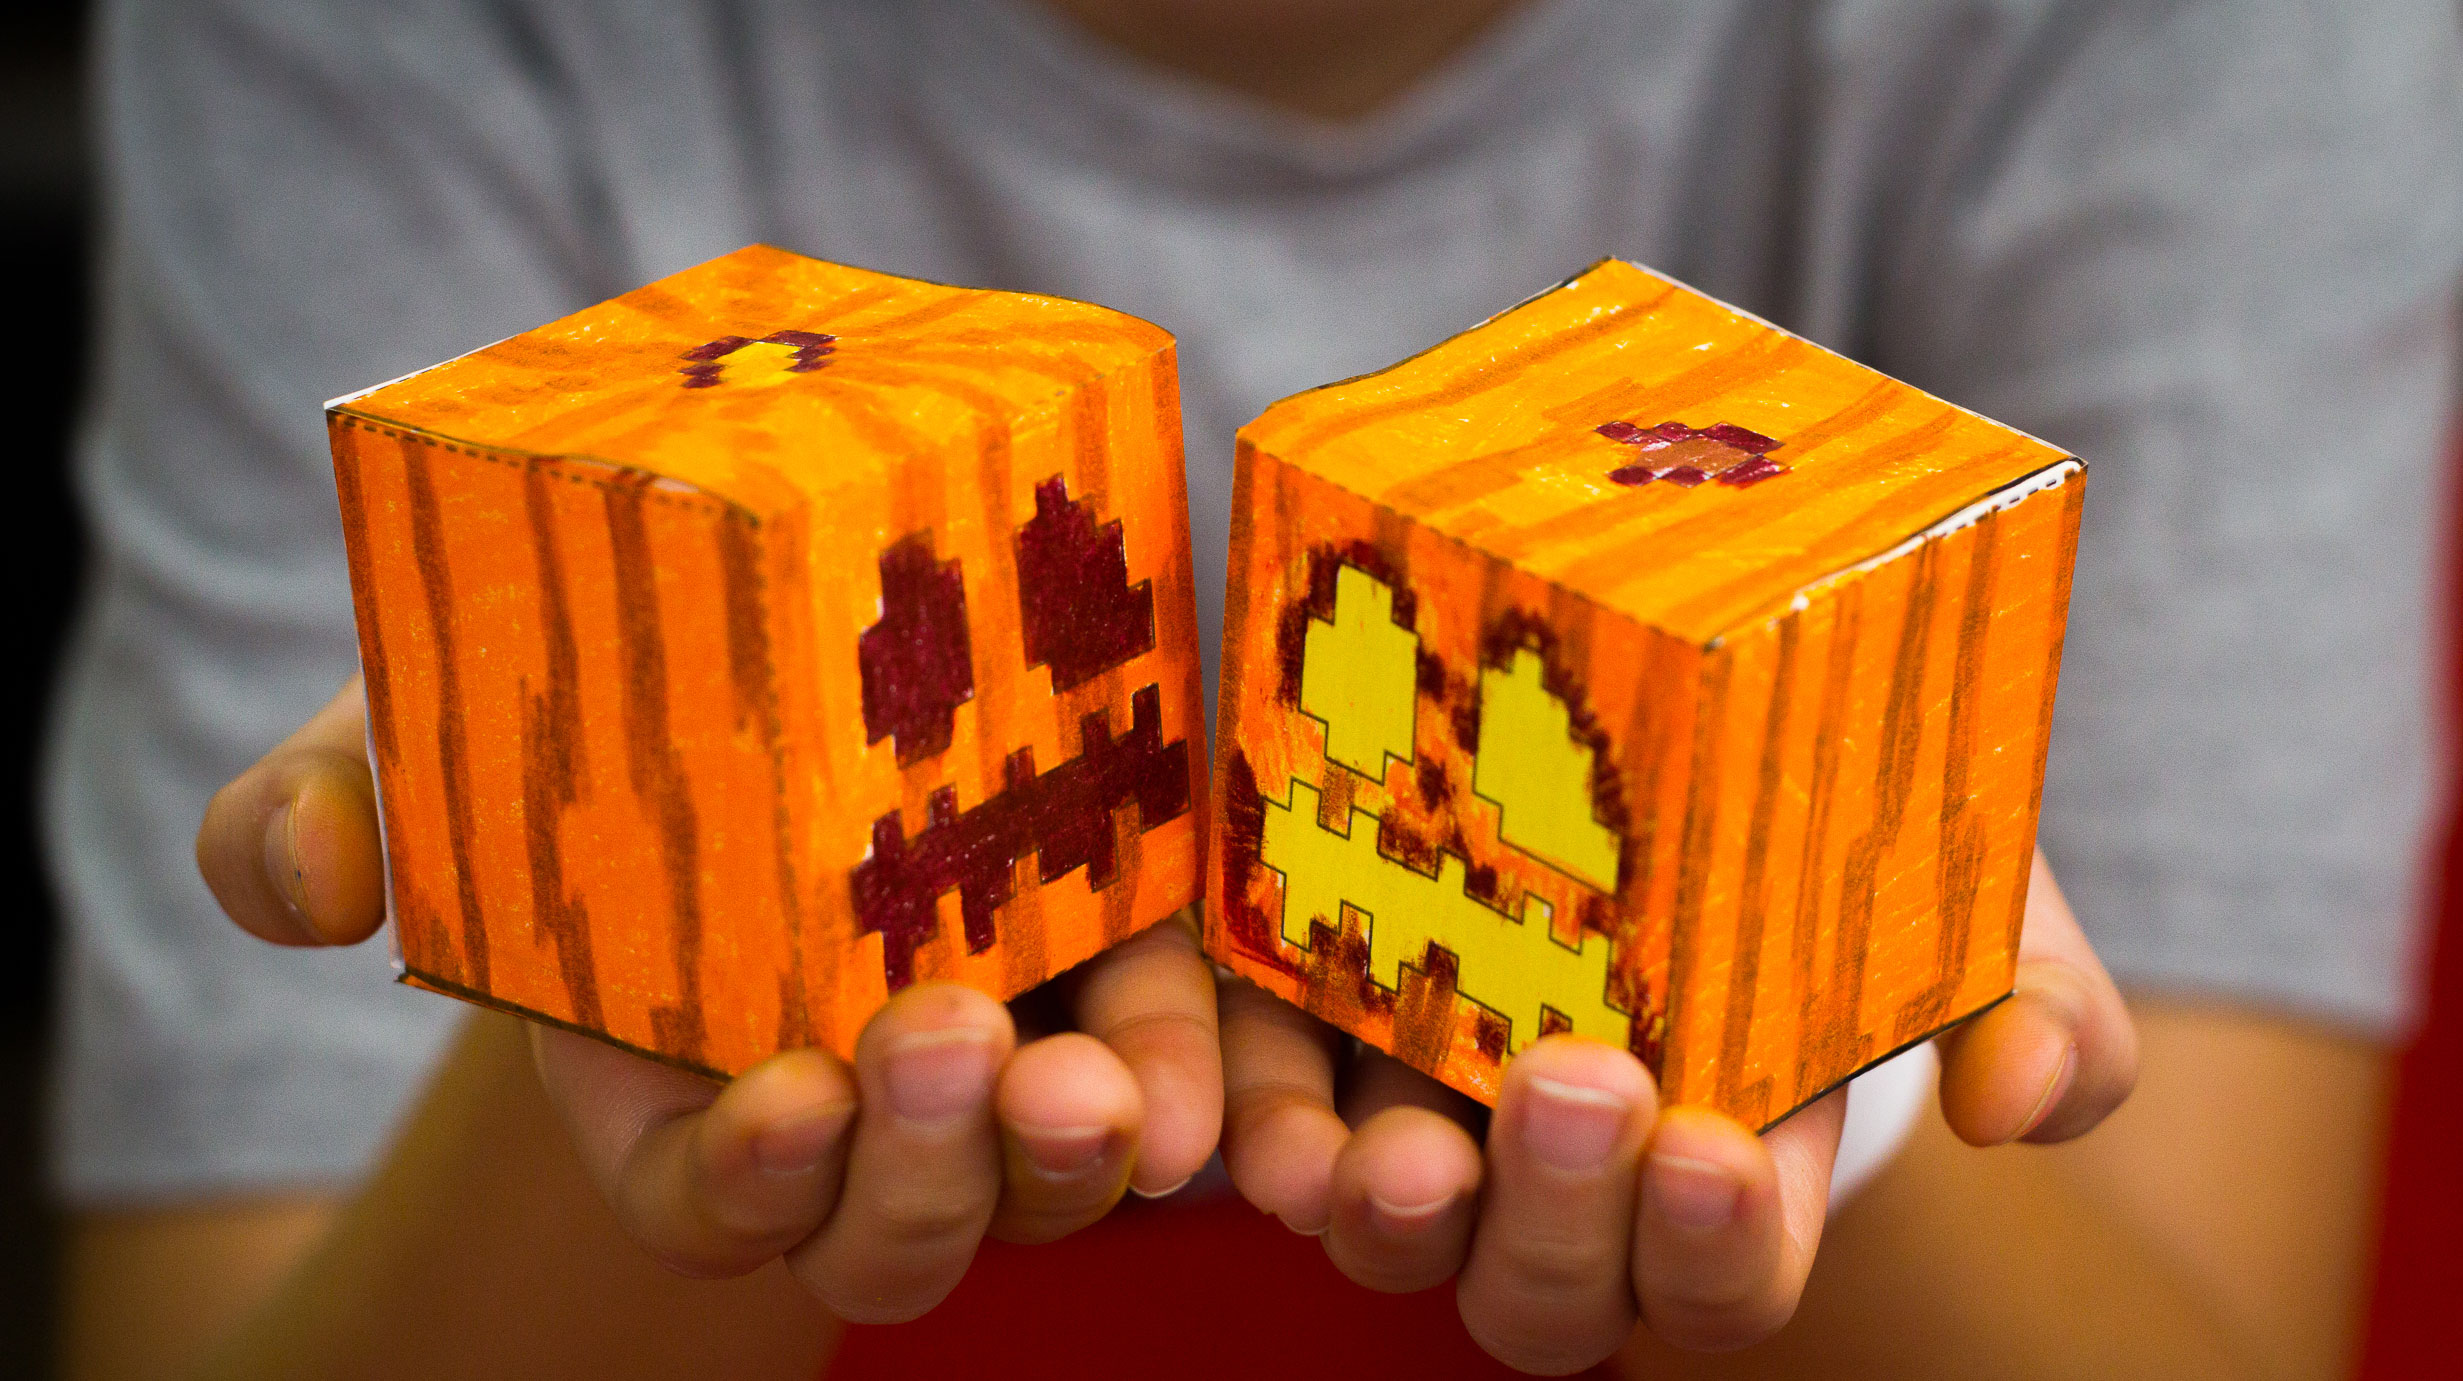 How To Make A Minecraft Pumpkin Cutout